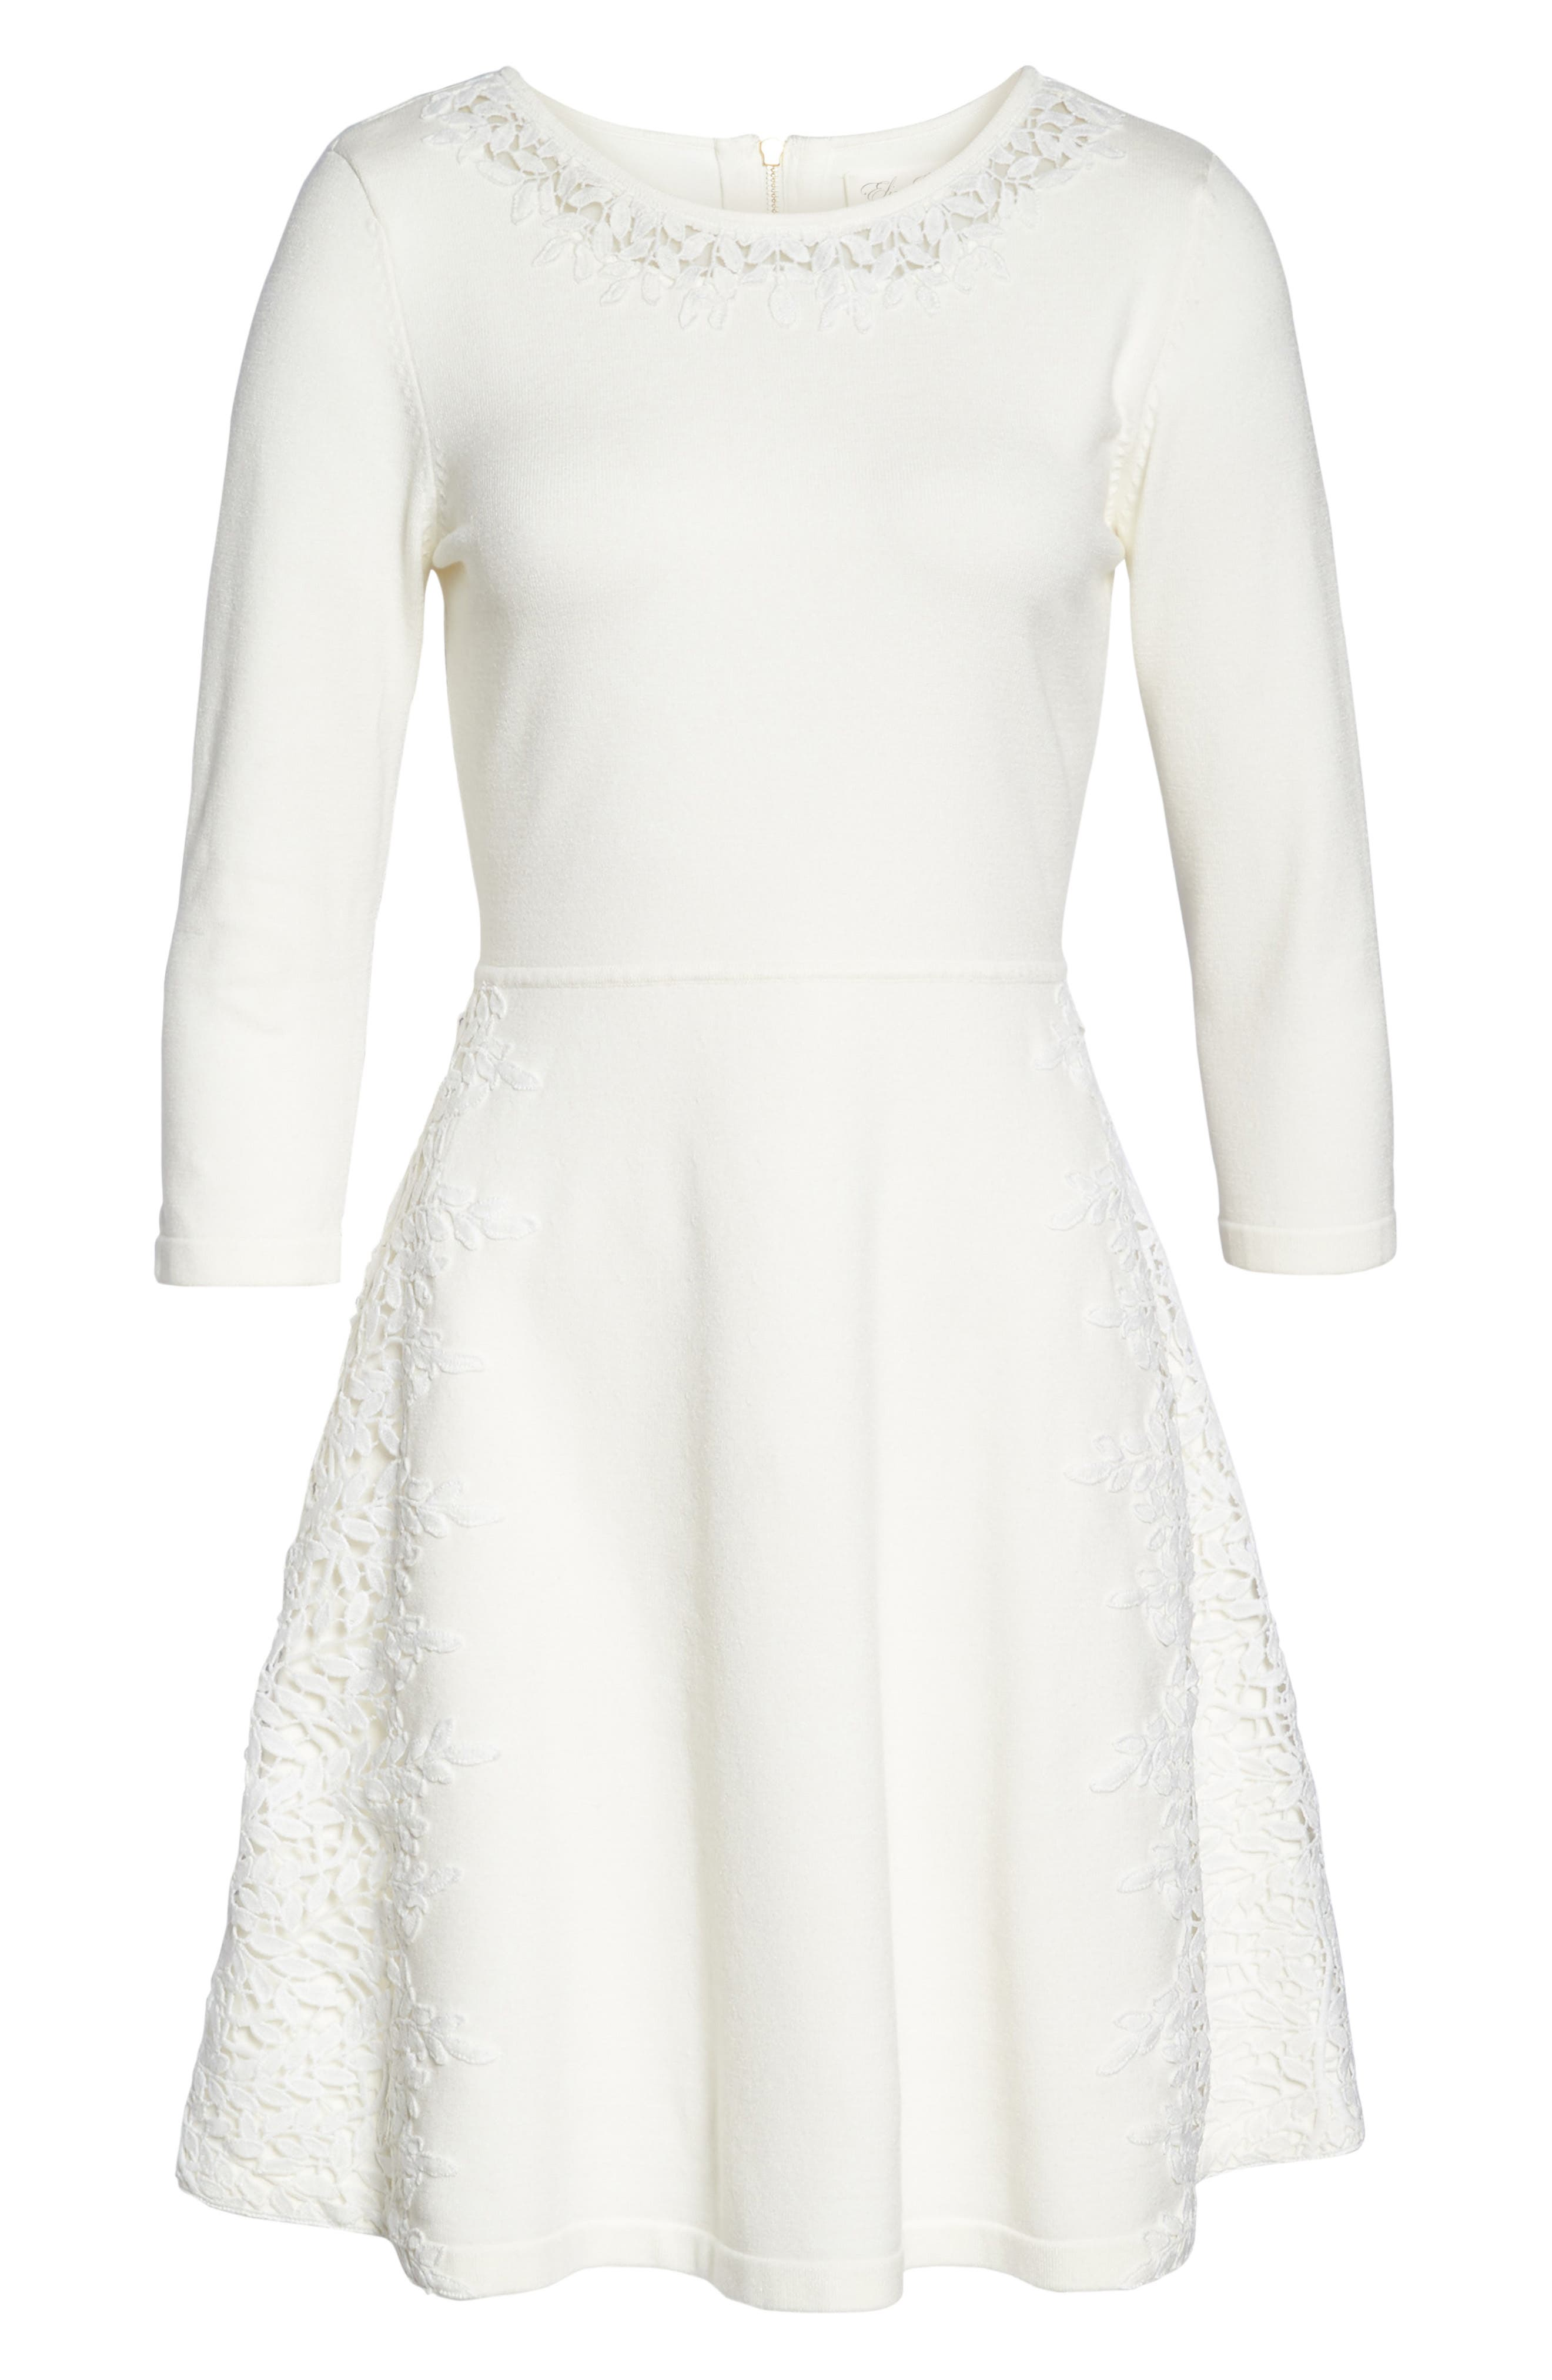 Lace Overlay Sweater Dress,                             Alternate thumbnail 6, color,                             900